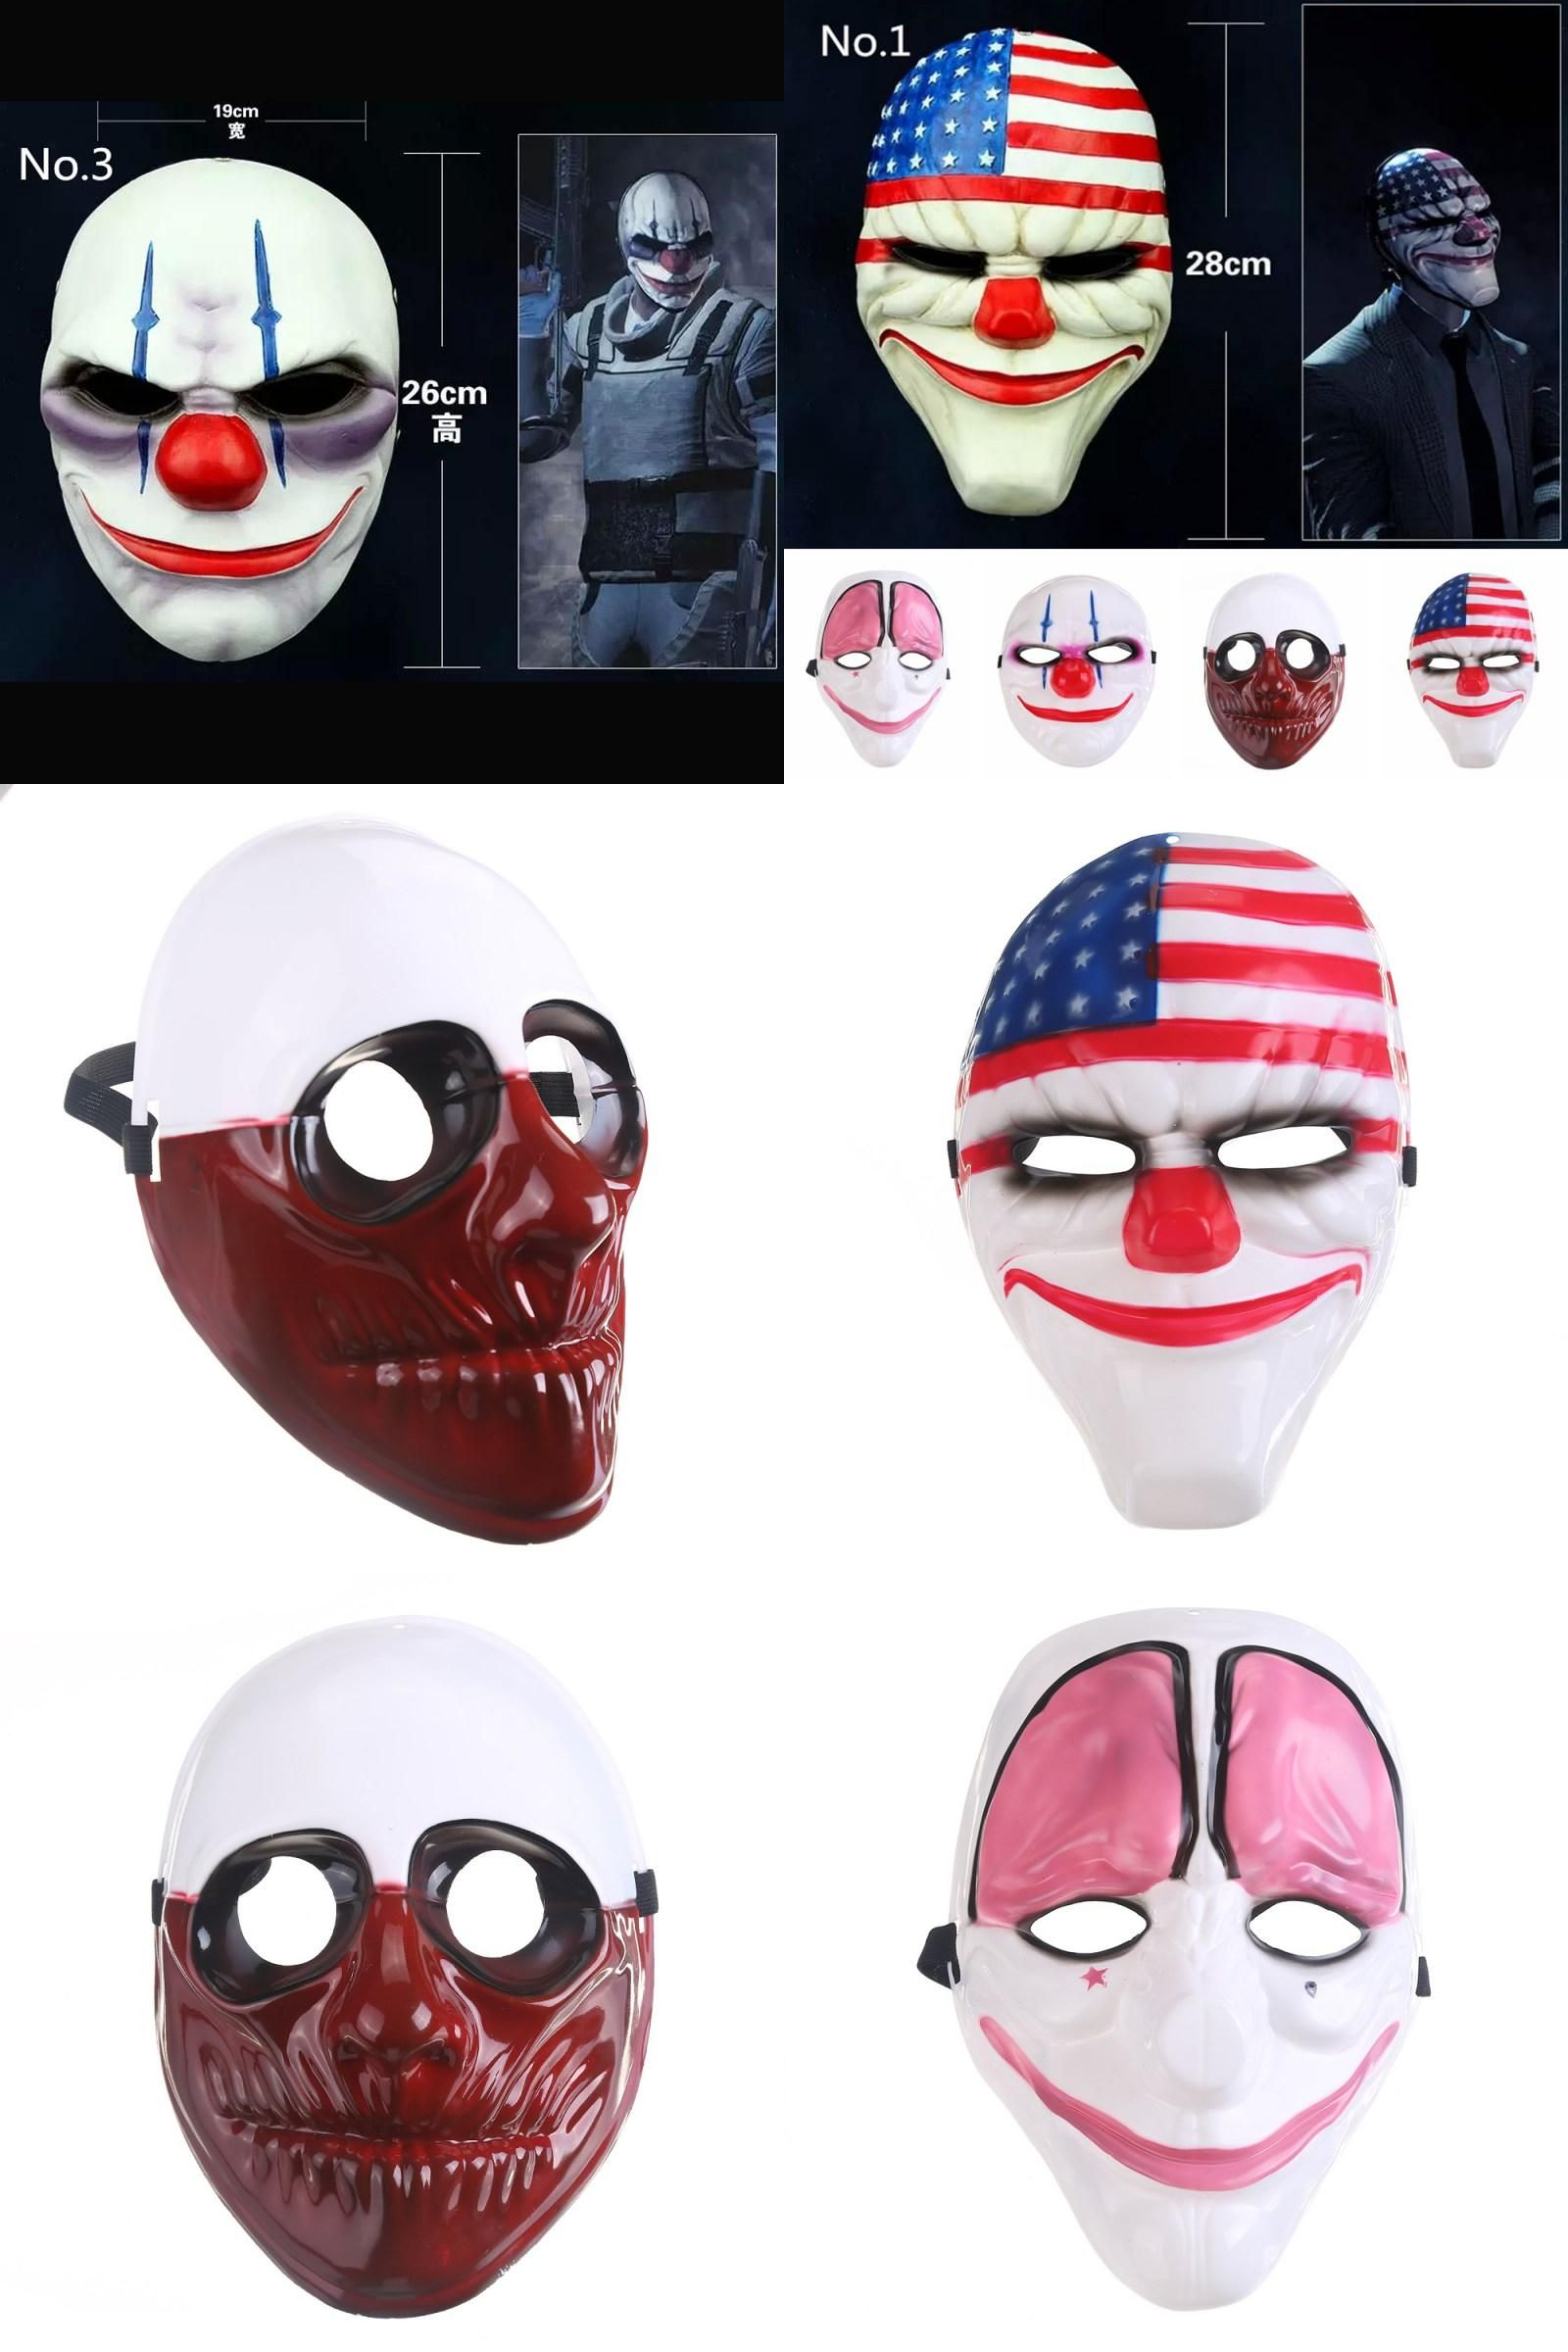 Visit to Buy] Halloween Party Mask Mask PVC Scary Clown Mask ...